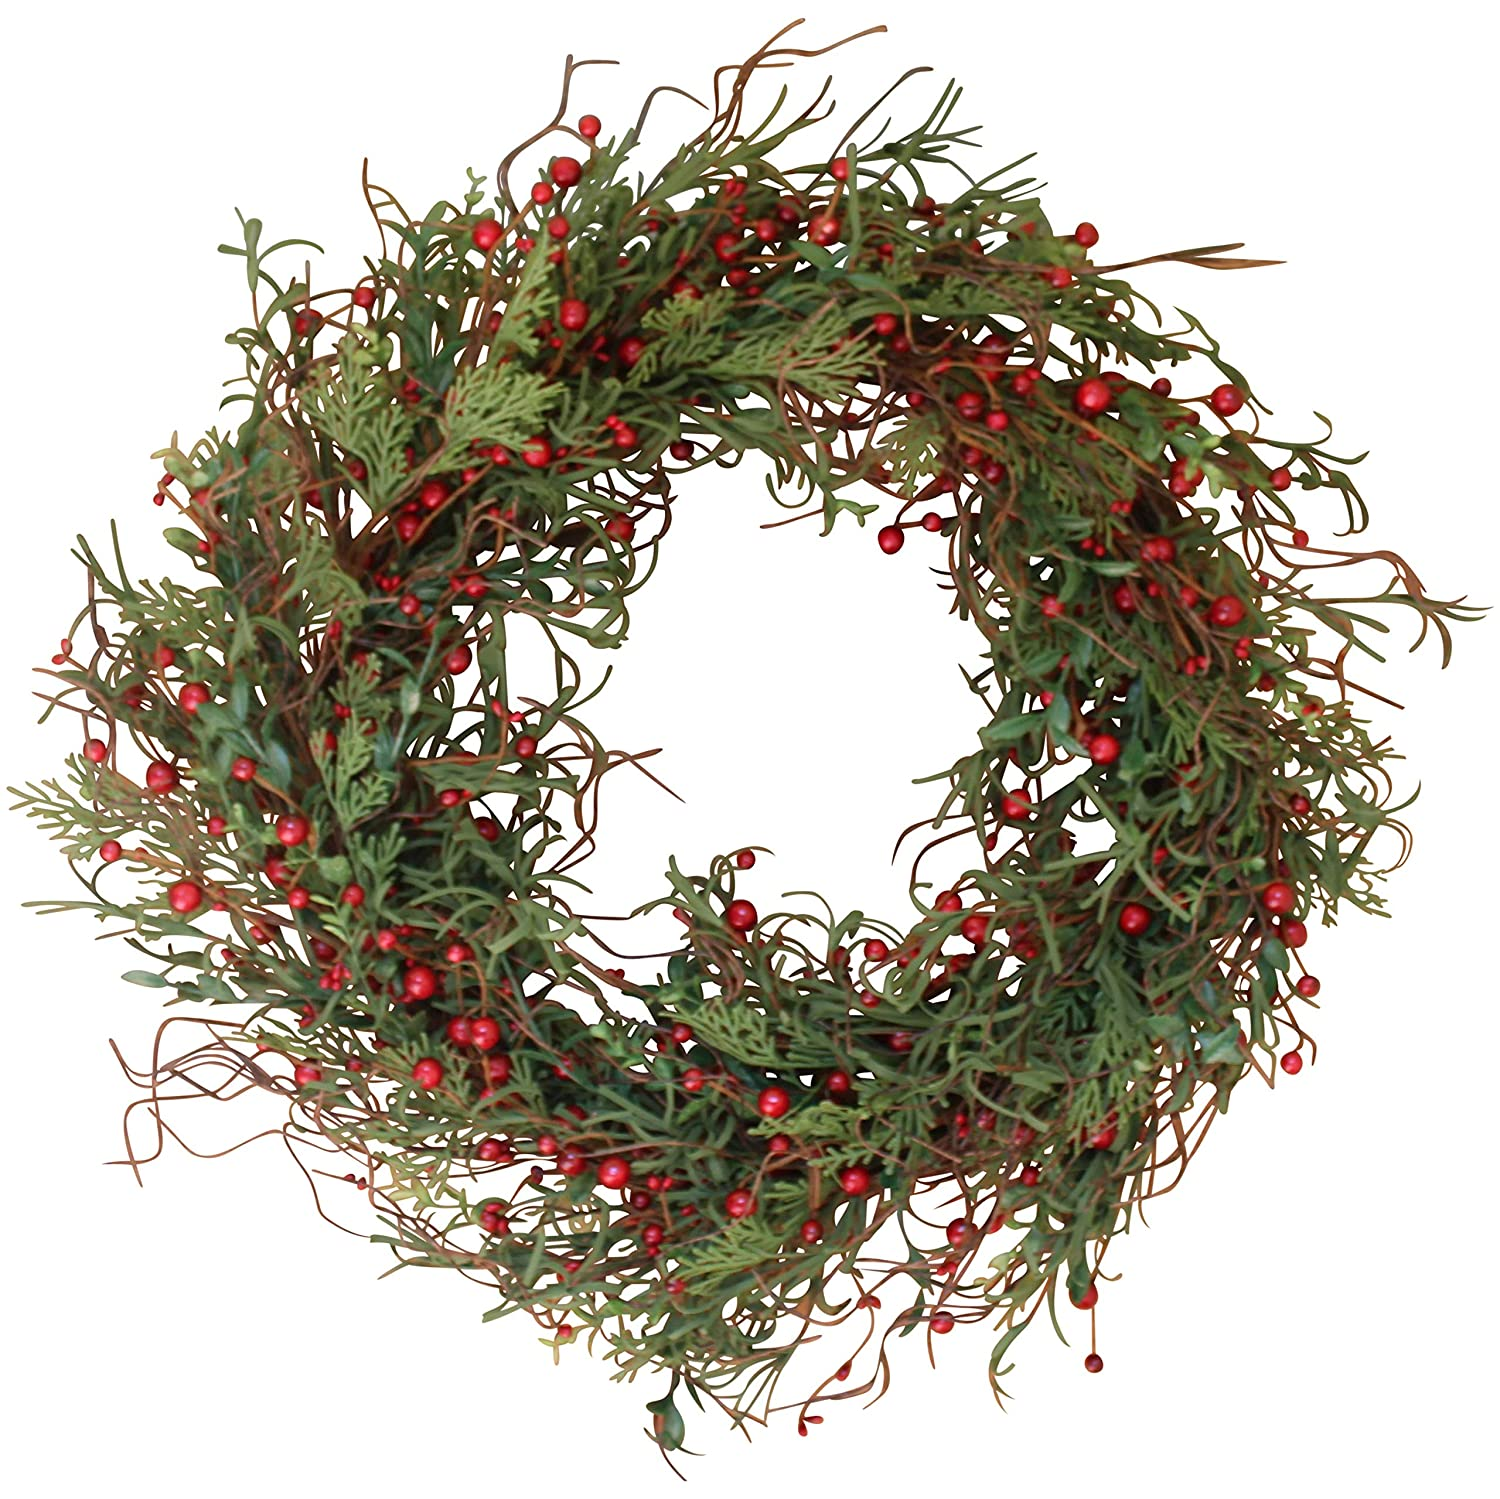 Marion Winter Berry Wreath 24 Inch - Versatile and Stunning Full Design, Approved for Covered Outdoor Use, with Beautiful White Gift Box The Wreath Depot